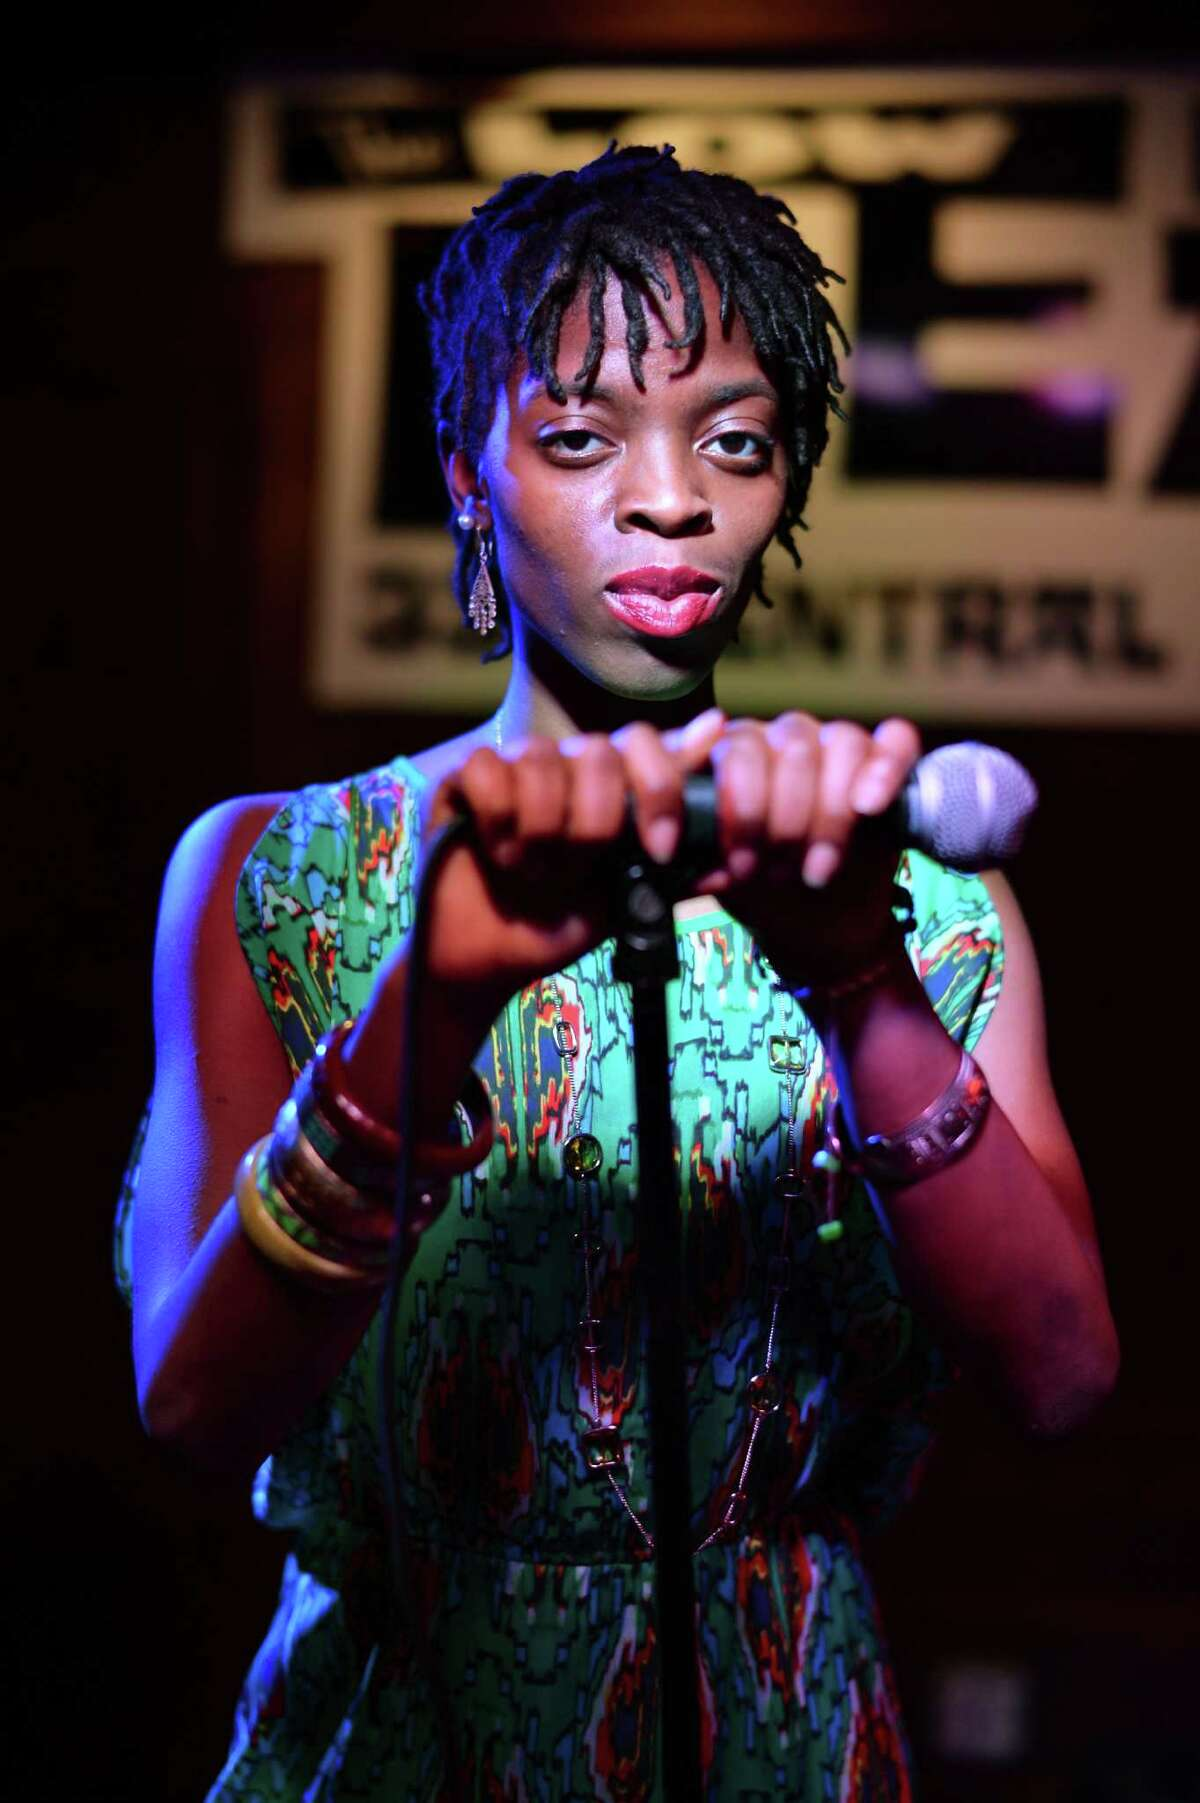 Poet Amani Olugbala on stage for a photo shoot at The Low Beat Wednesday May 25, 2016 in Albany, NY. (John Carl D'Annibale / Times Union)